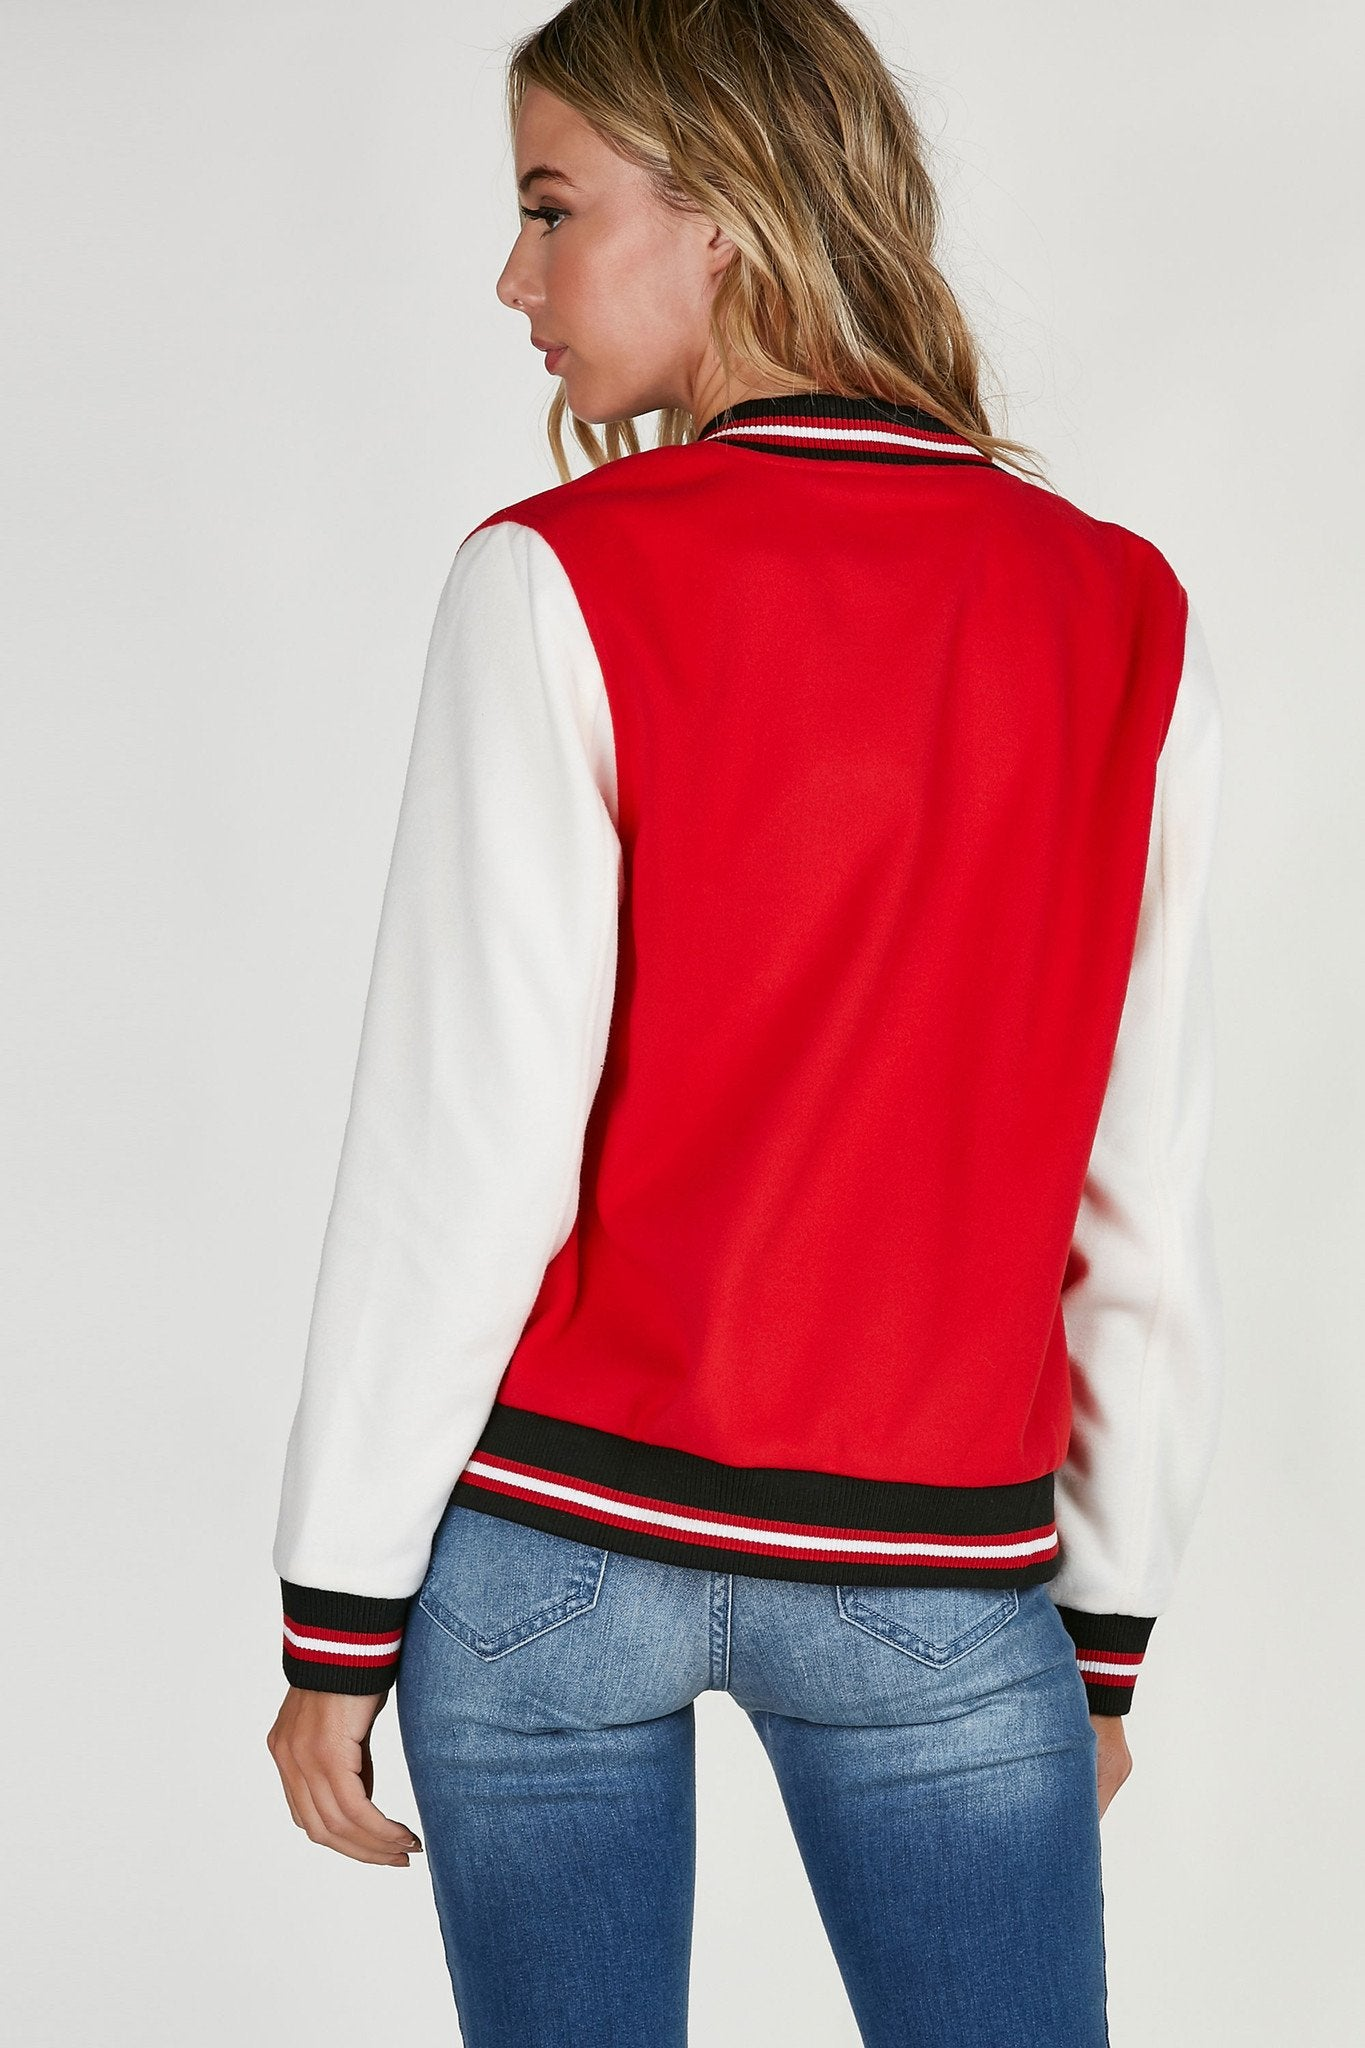 Tomboy Patched Varsity Jacket